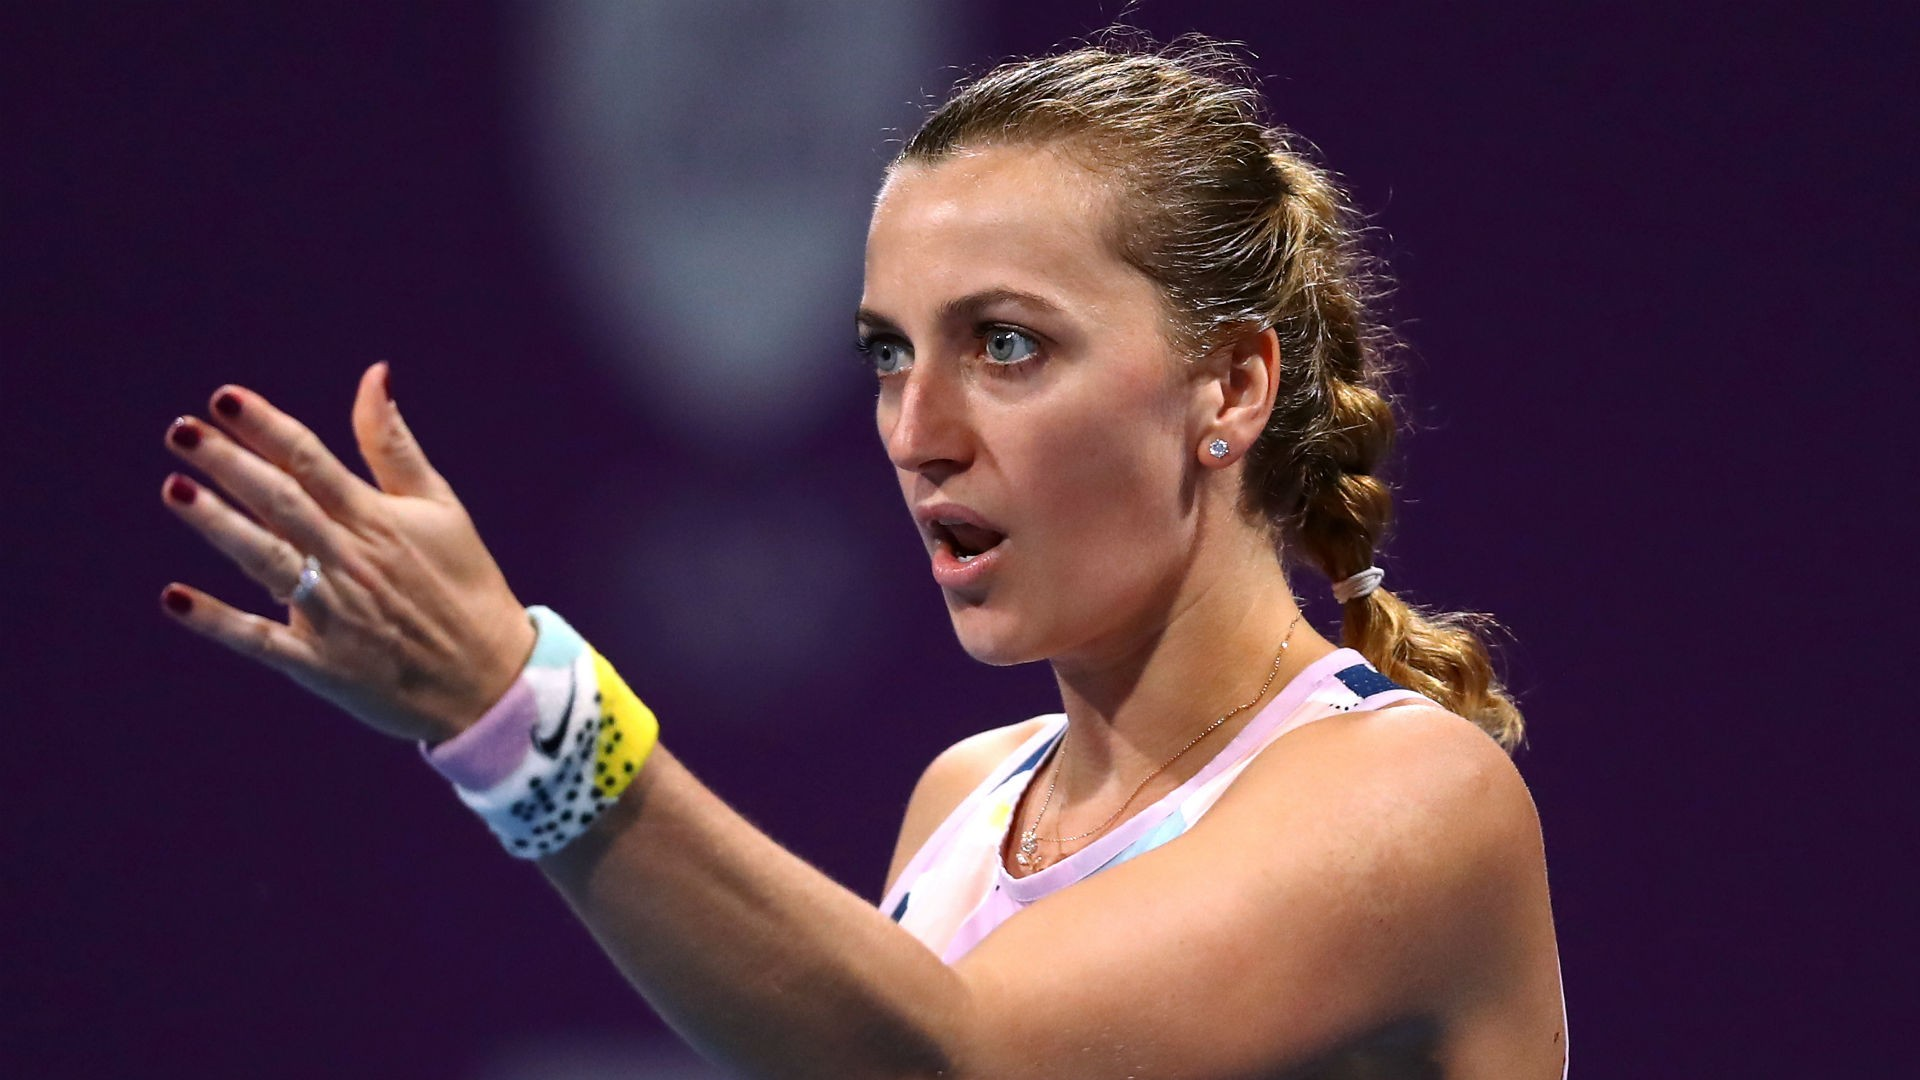 Petra Kvitova believes Grand Slams without fans should not be played